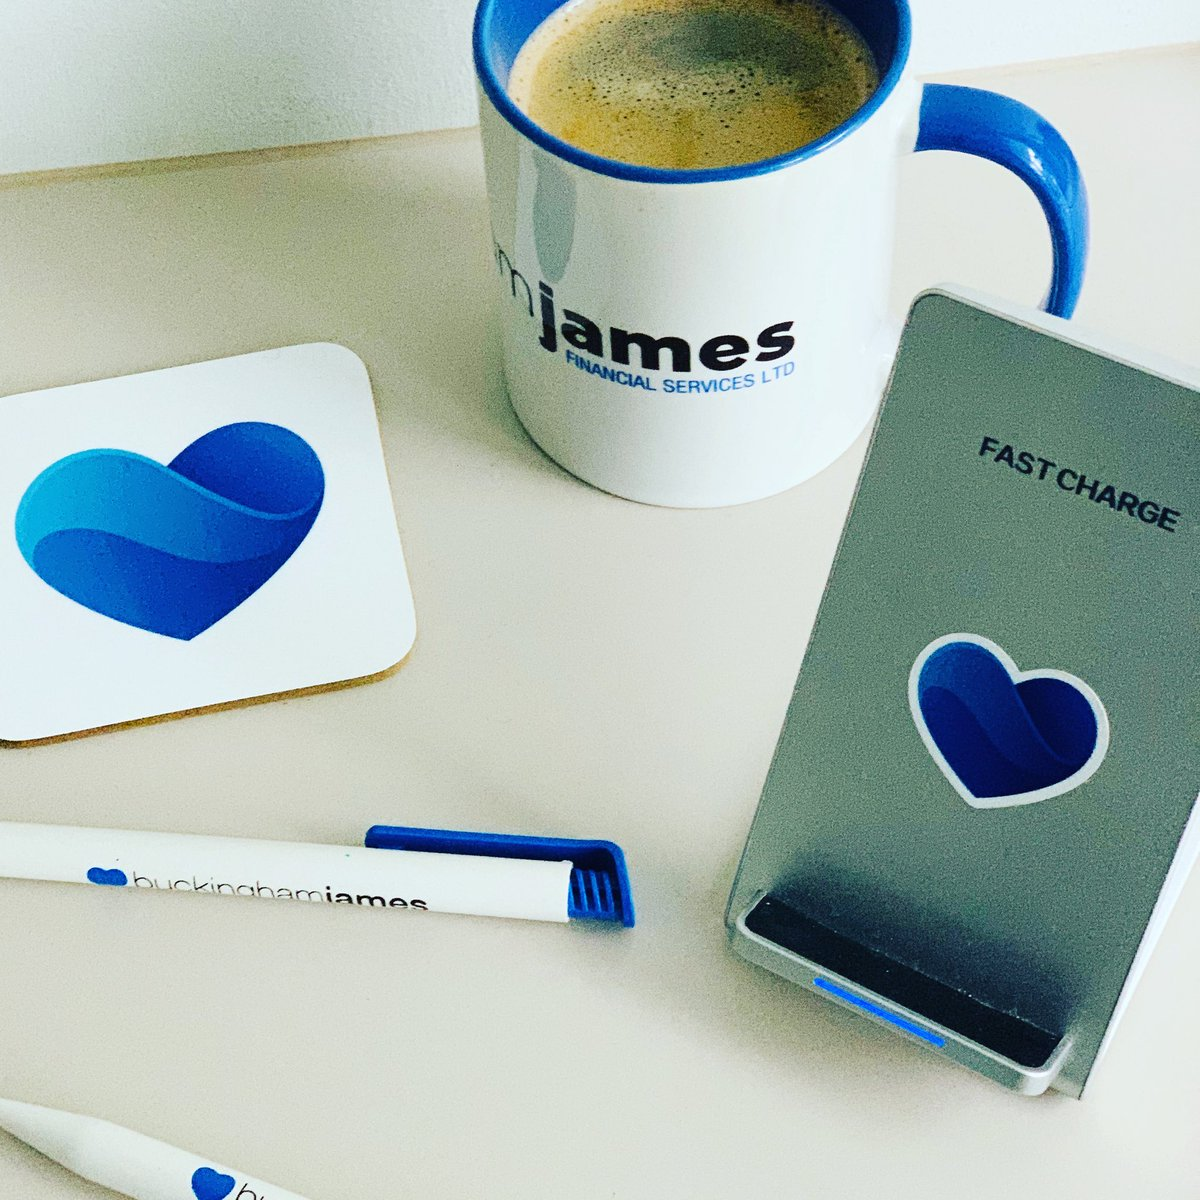 The coffee is brewed, the #ENGvAUS rugby is on the tv and the door is open!!!  #ShareTheLove #Independent #Mortgage #Broker #ReMortgage #LifeCover #MortgageAdvice #5Star #CustomerService #LiveChat @BuckJamesFS http://www.buckinghamjames.co.uk